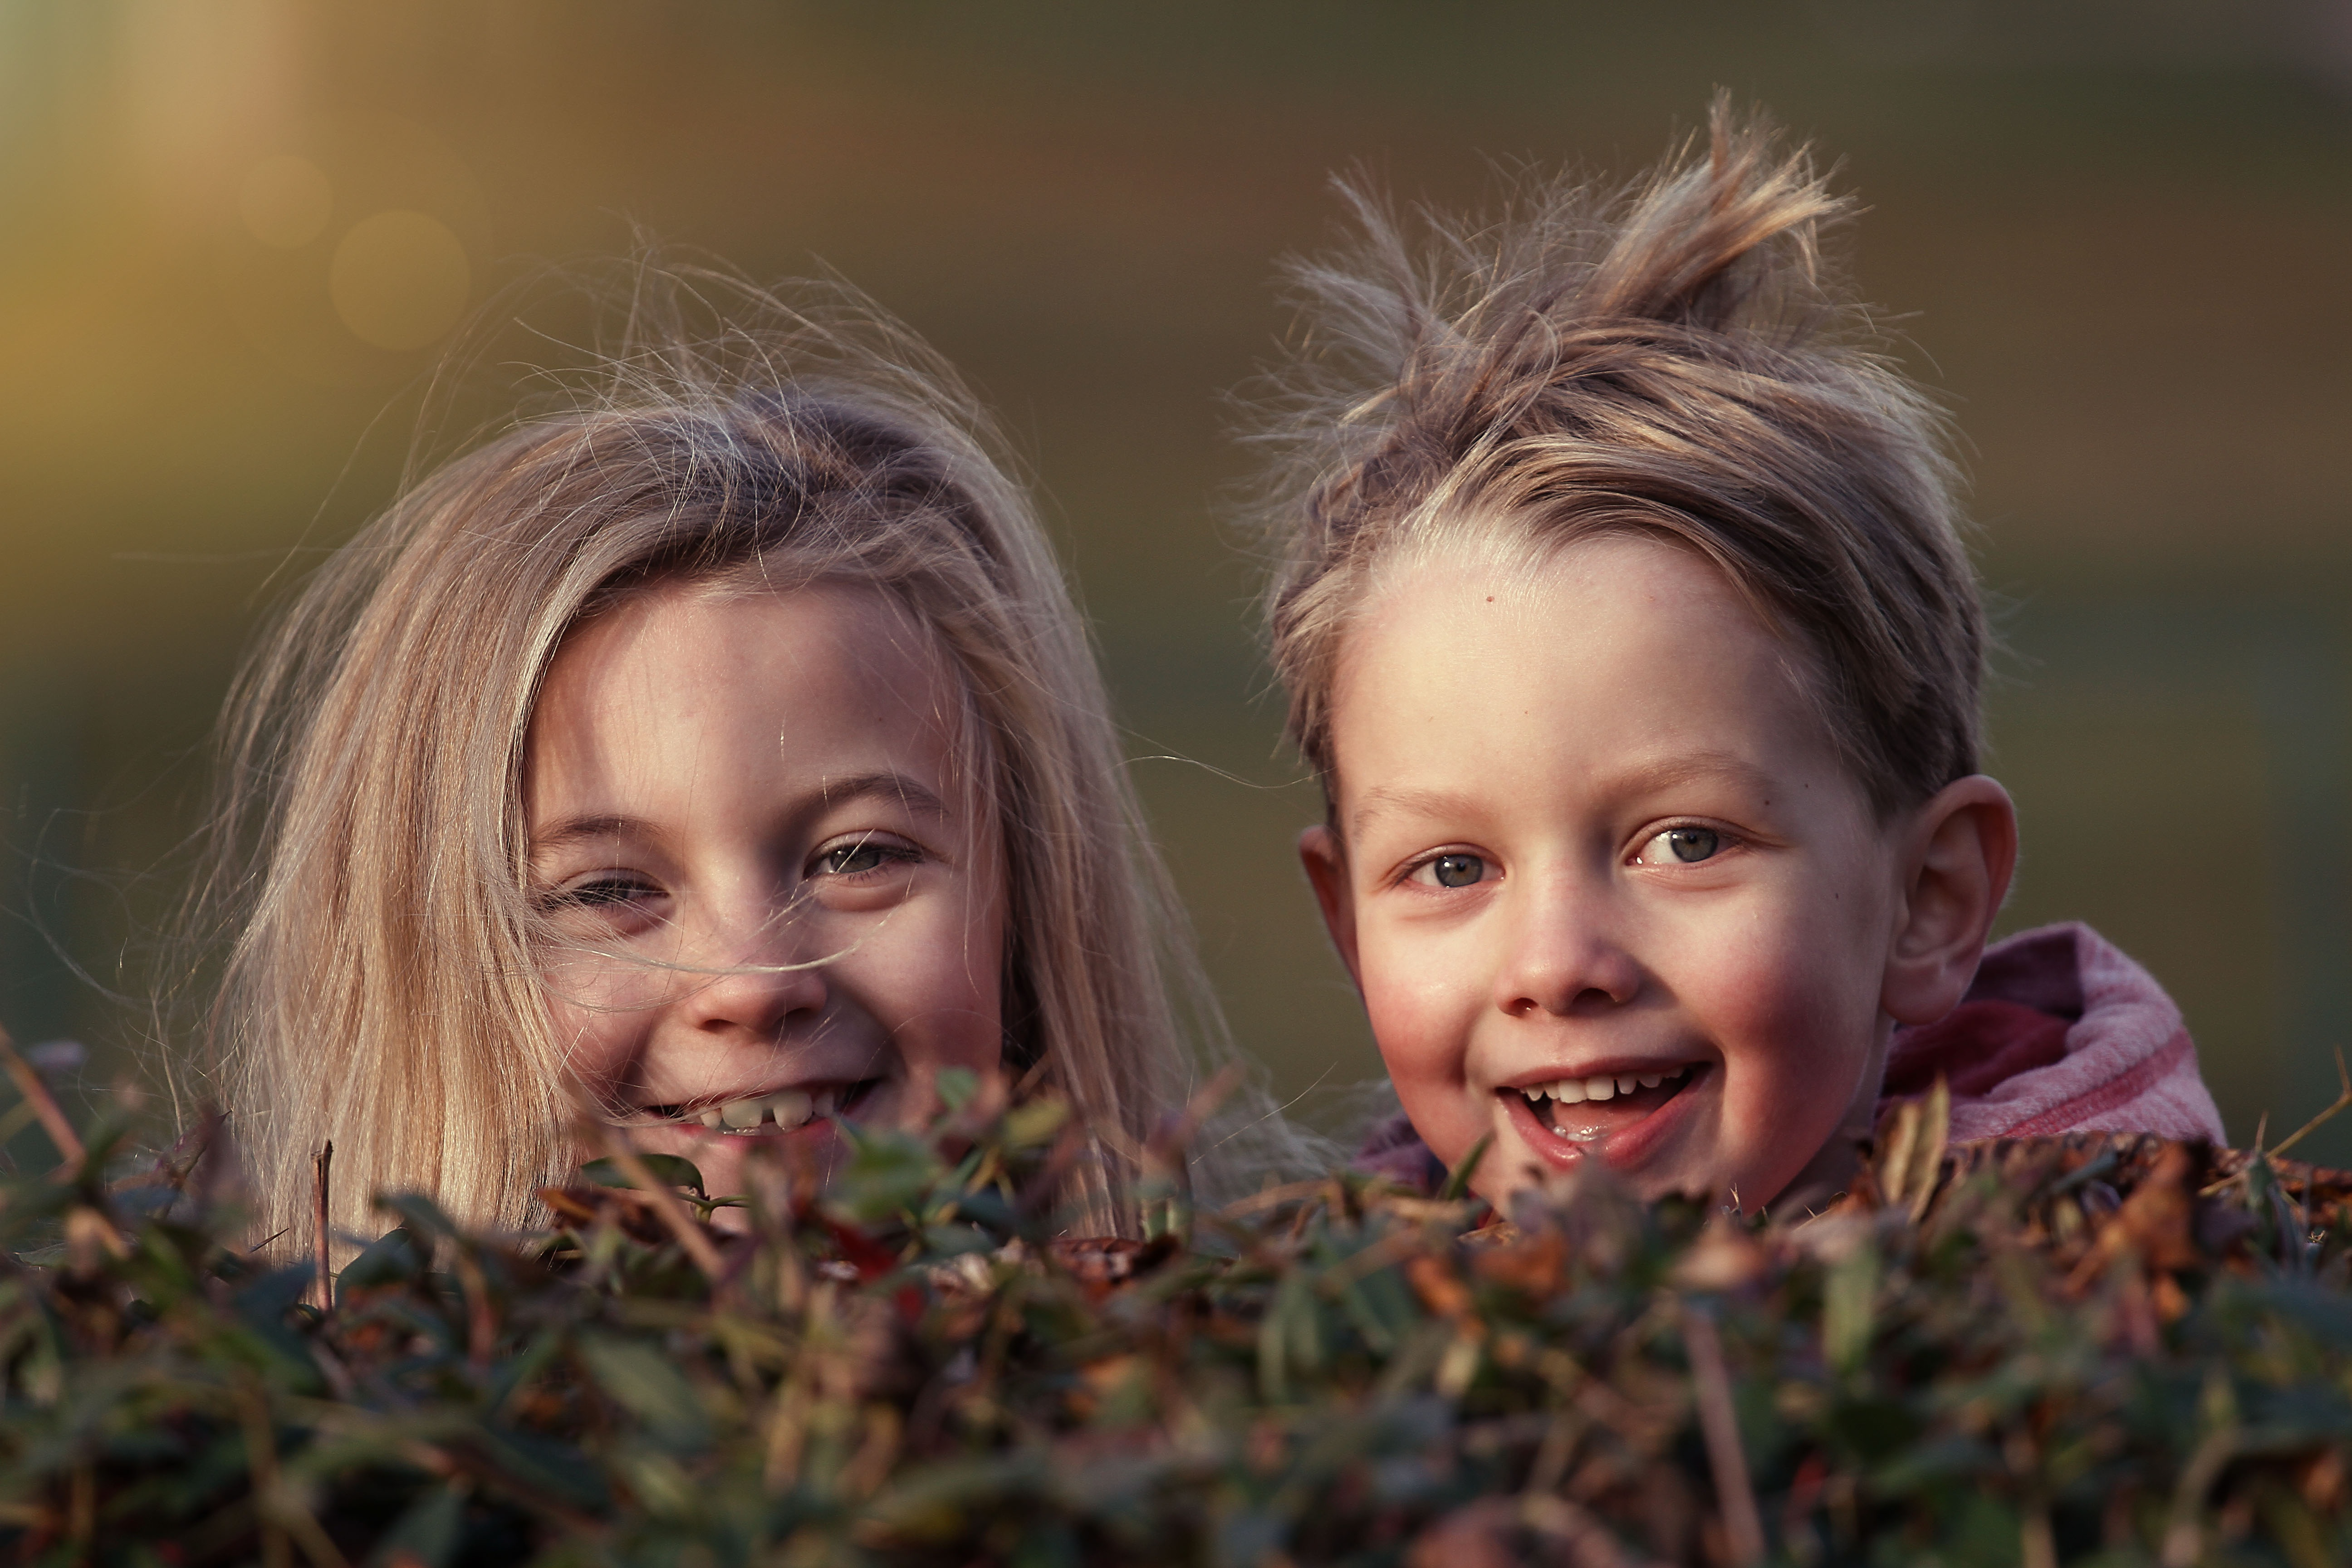 Canva - Children Laughing Outdoors